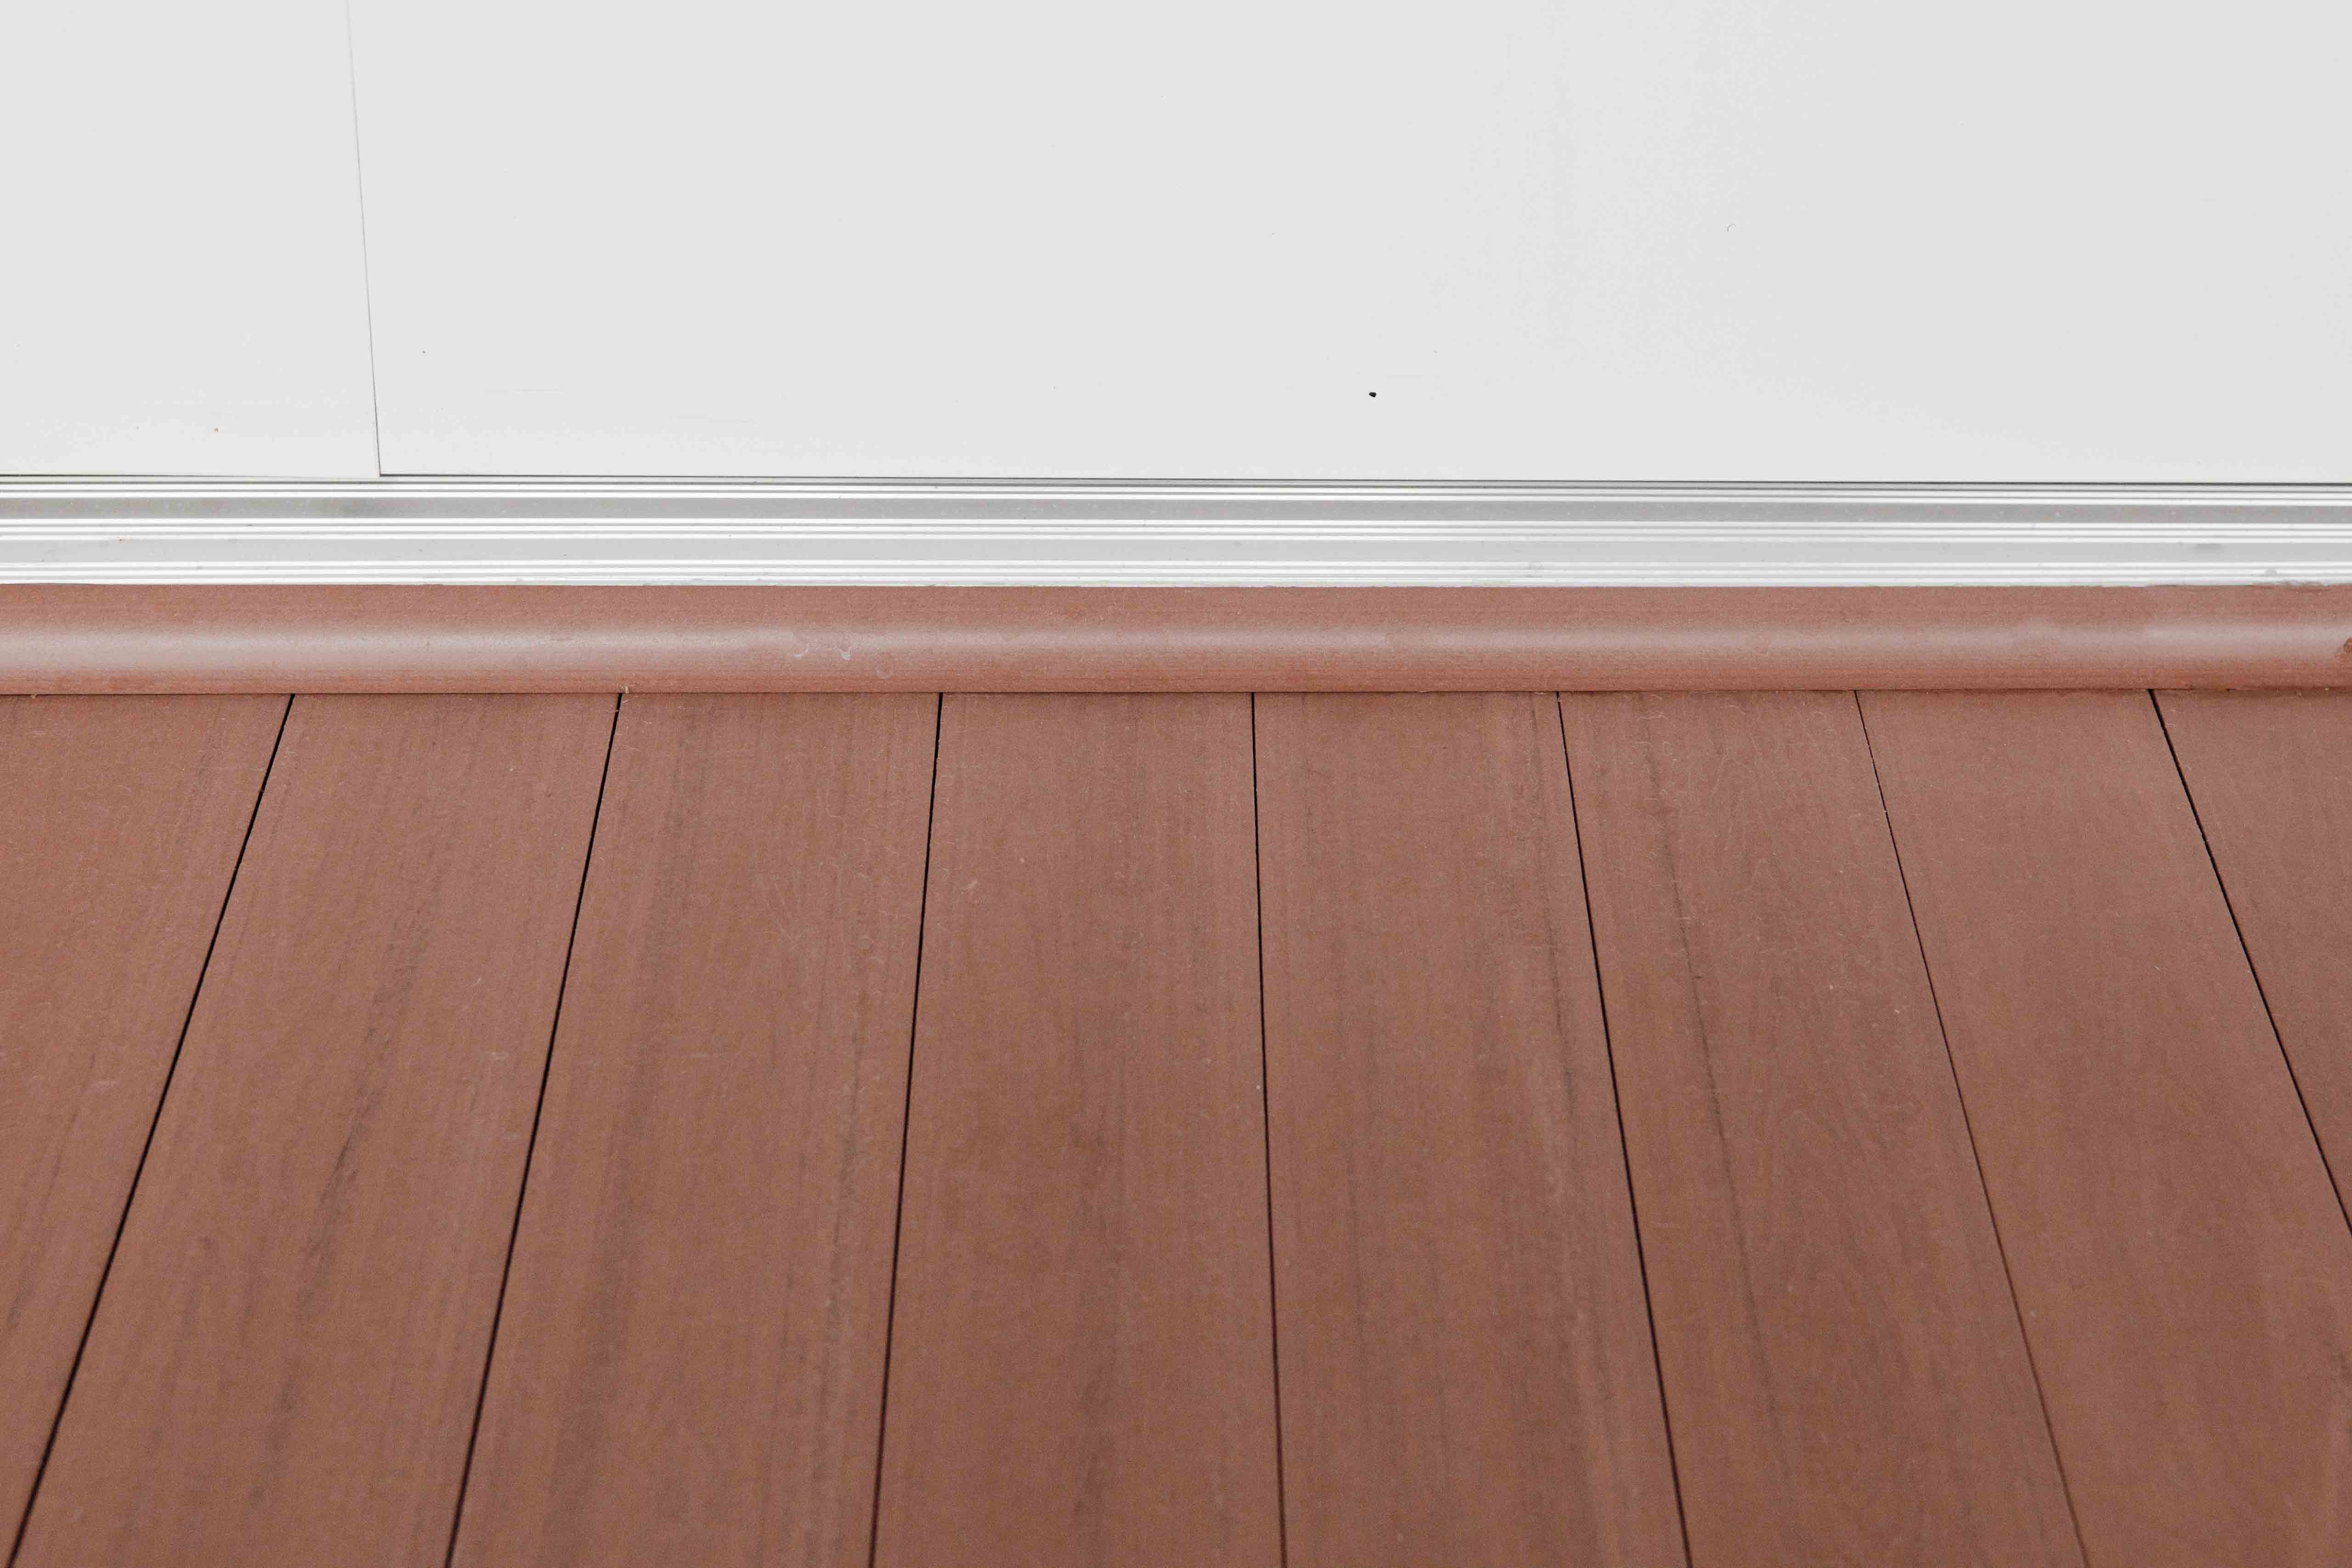 Aeratis Trim Options Aeratis Porch Flooring